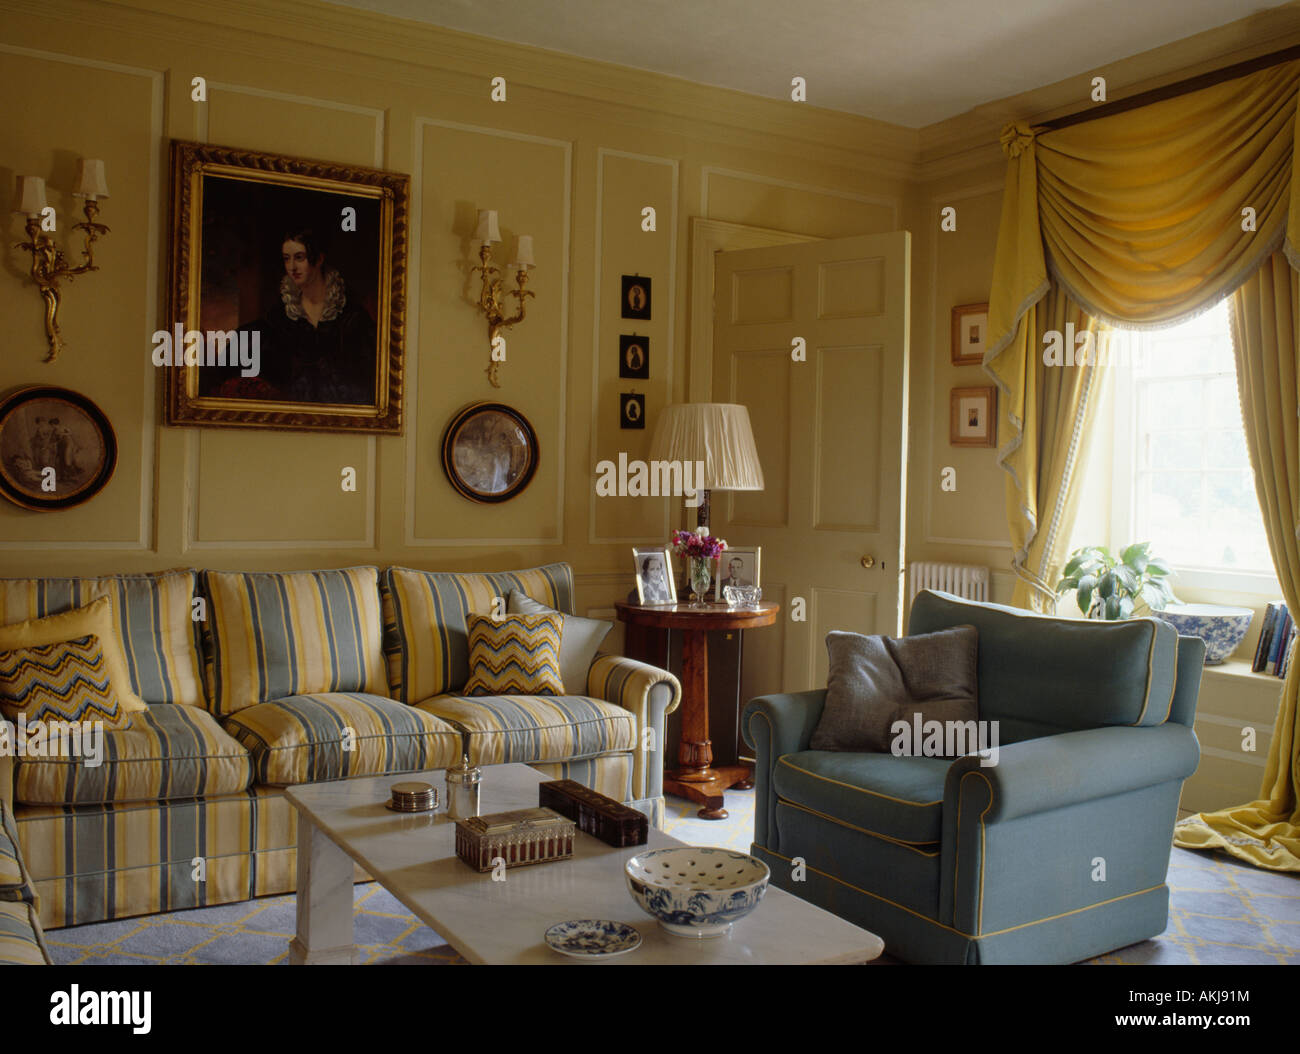 Yellow and blue striped sofa and blue armchair in cream panelled ...